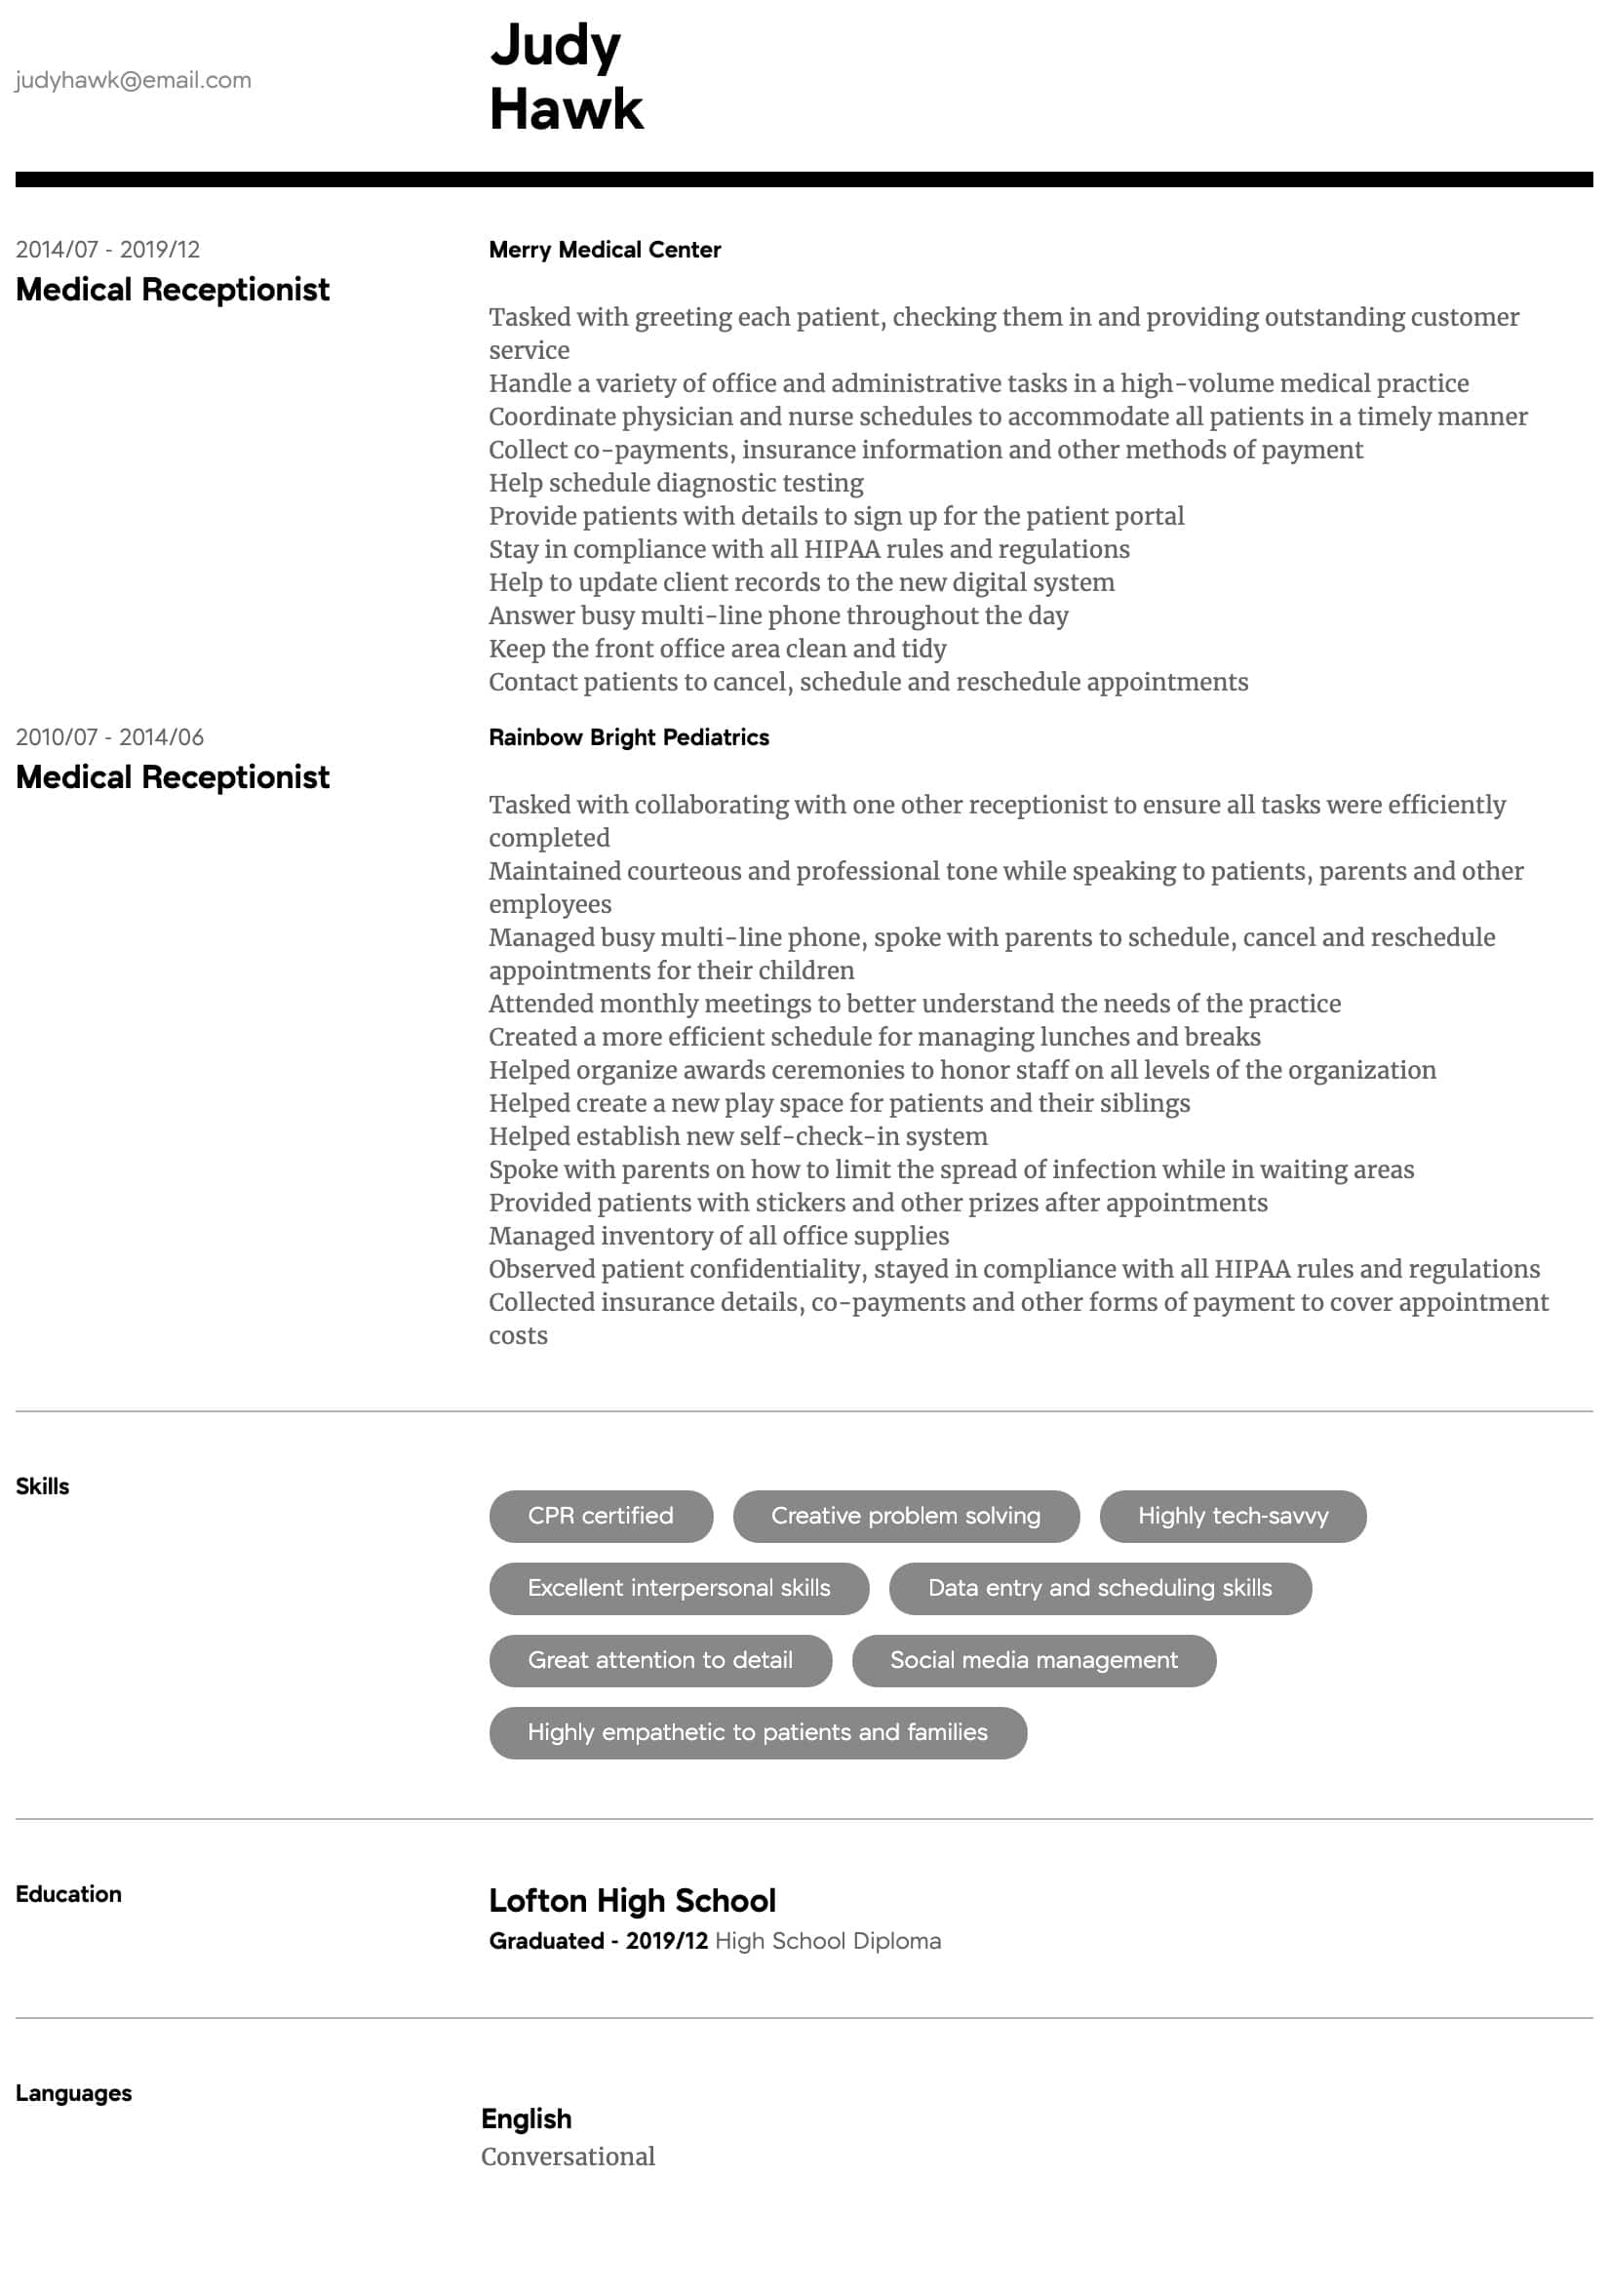 Medical Receptionist Resume Samples All Experience Levels